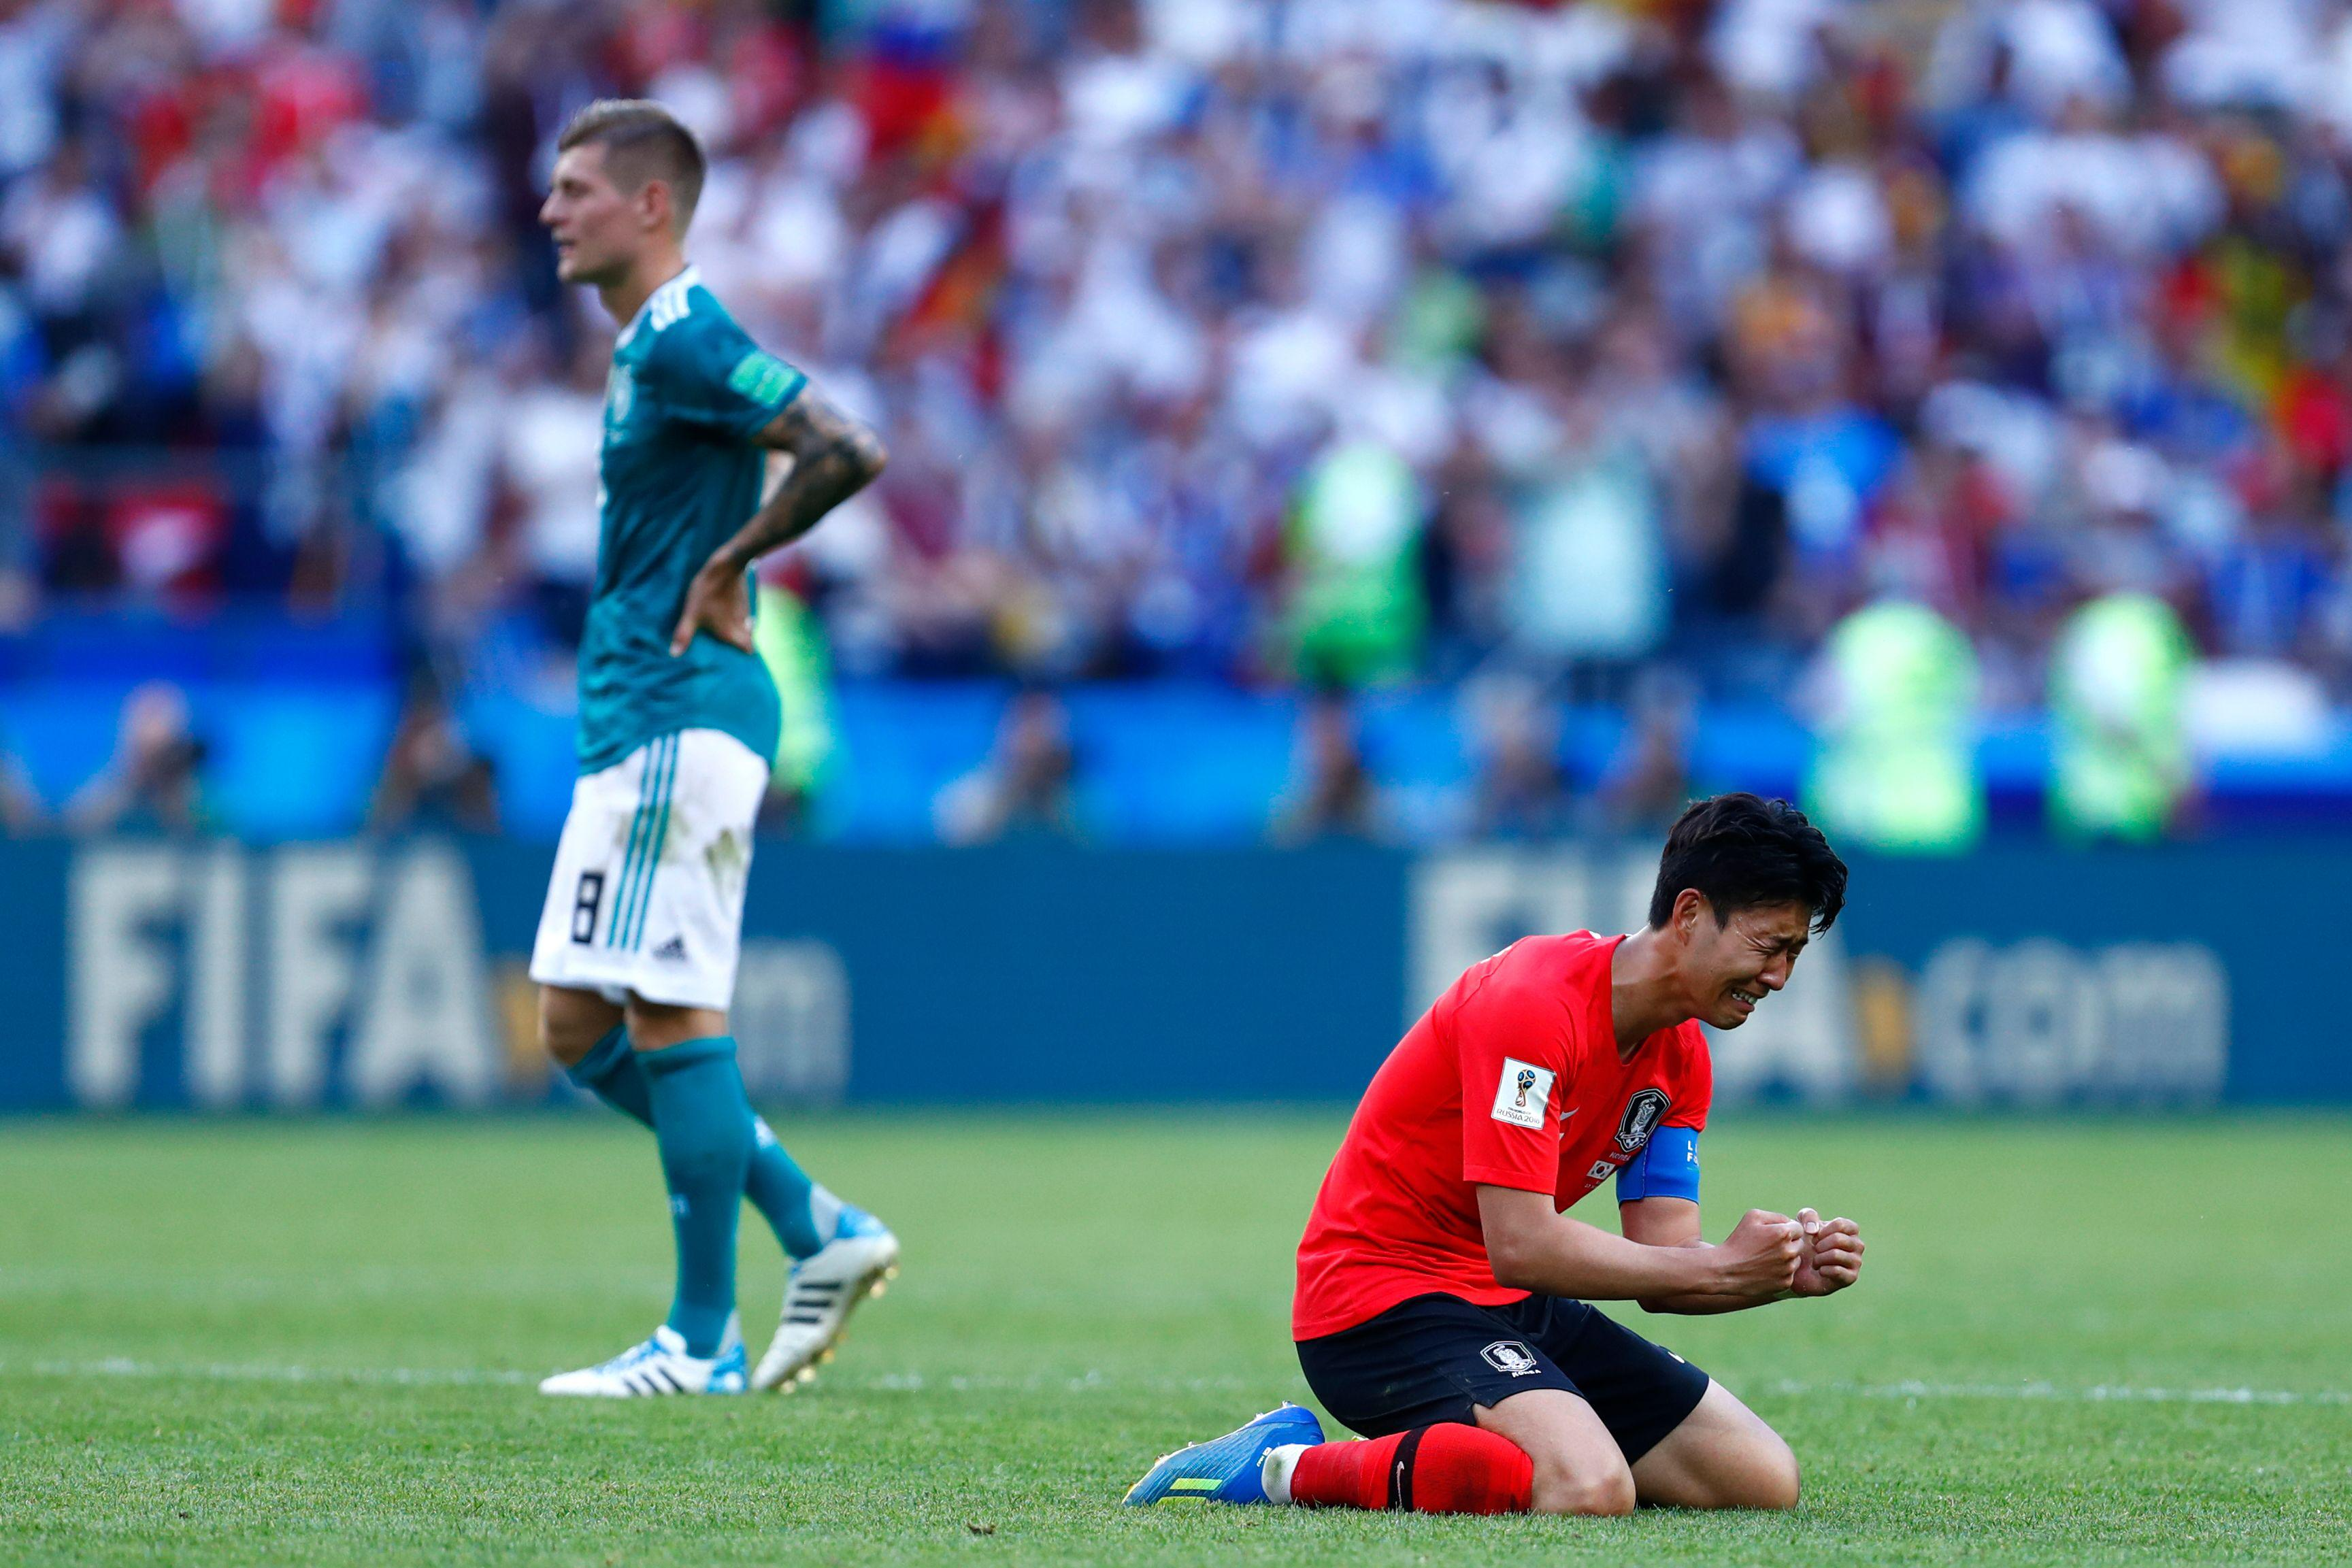 South Korea's forward Son Heung-min (R) reacts after his team did not qualify following the Russia 2018 World Cup Group F football match between South Korea and Germany at the Kazan Arena in Kazan on June 27, 2018. (Photo by BENJAMIN CREMEL / AFP) / RESTRICTED TO EDITORIAL USE - NO MOBILE PUSH ALERTS/DOWNLOADS        (Photo credit should read BENJAMIN CREMEL/AFP/Getty Images)